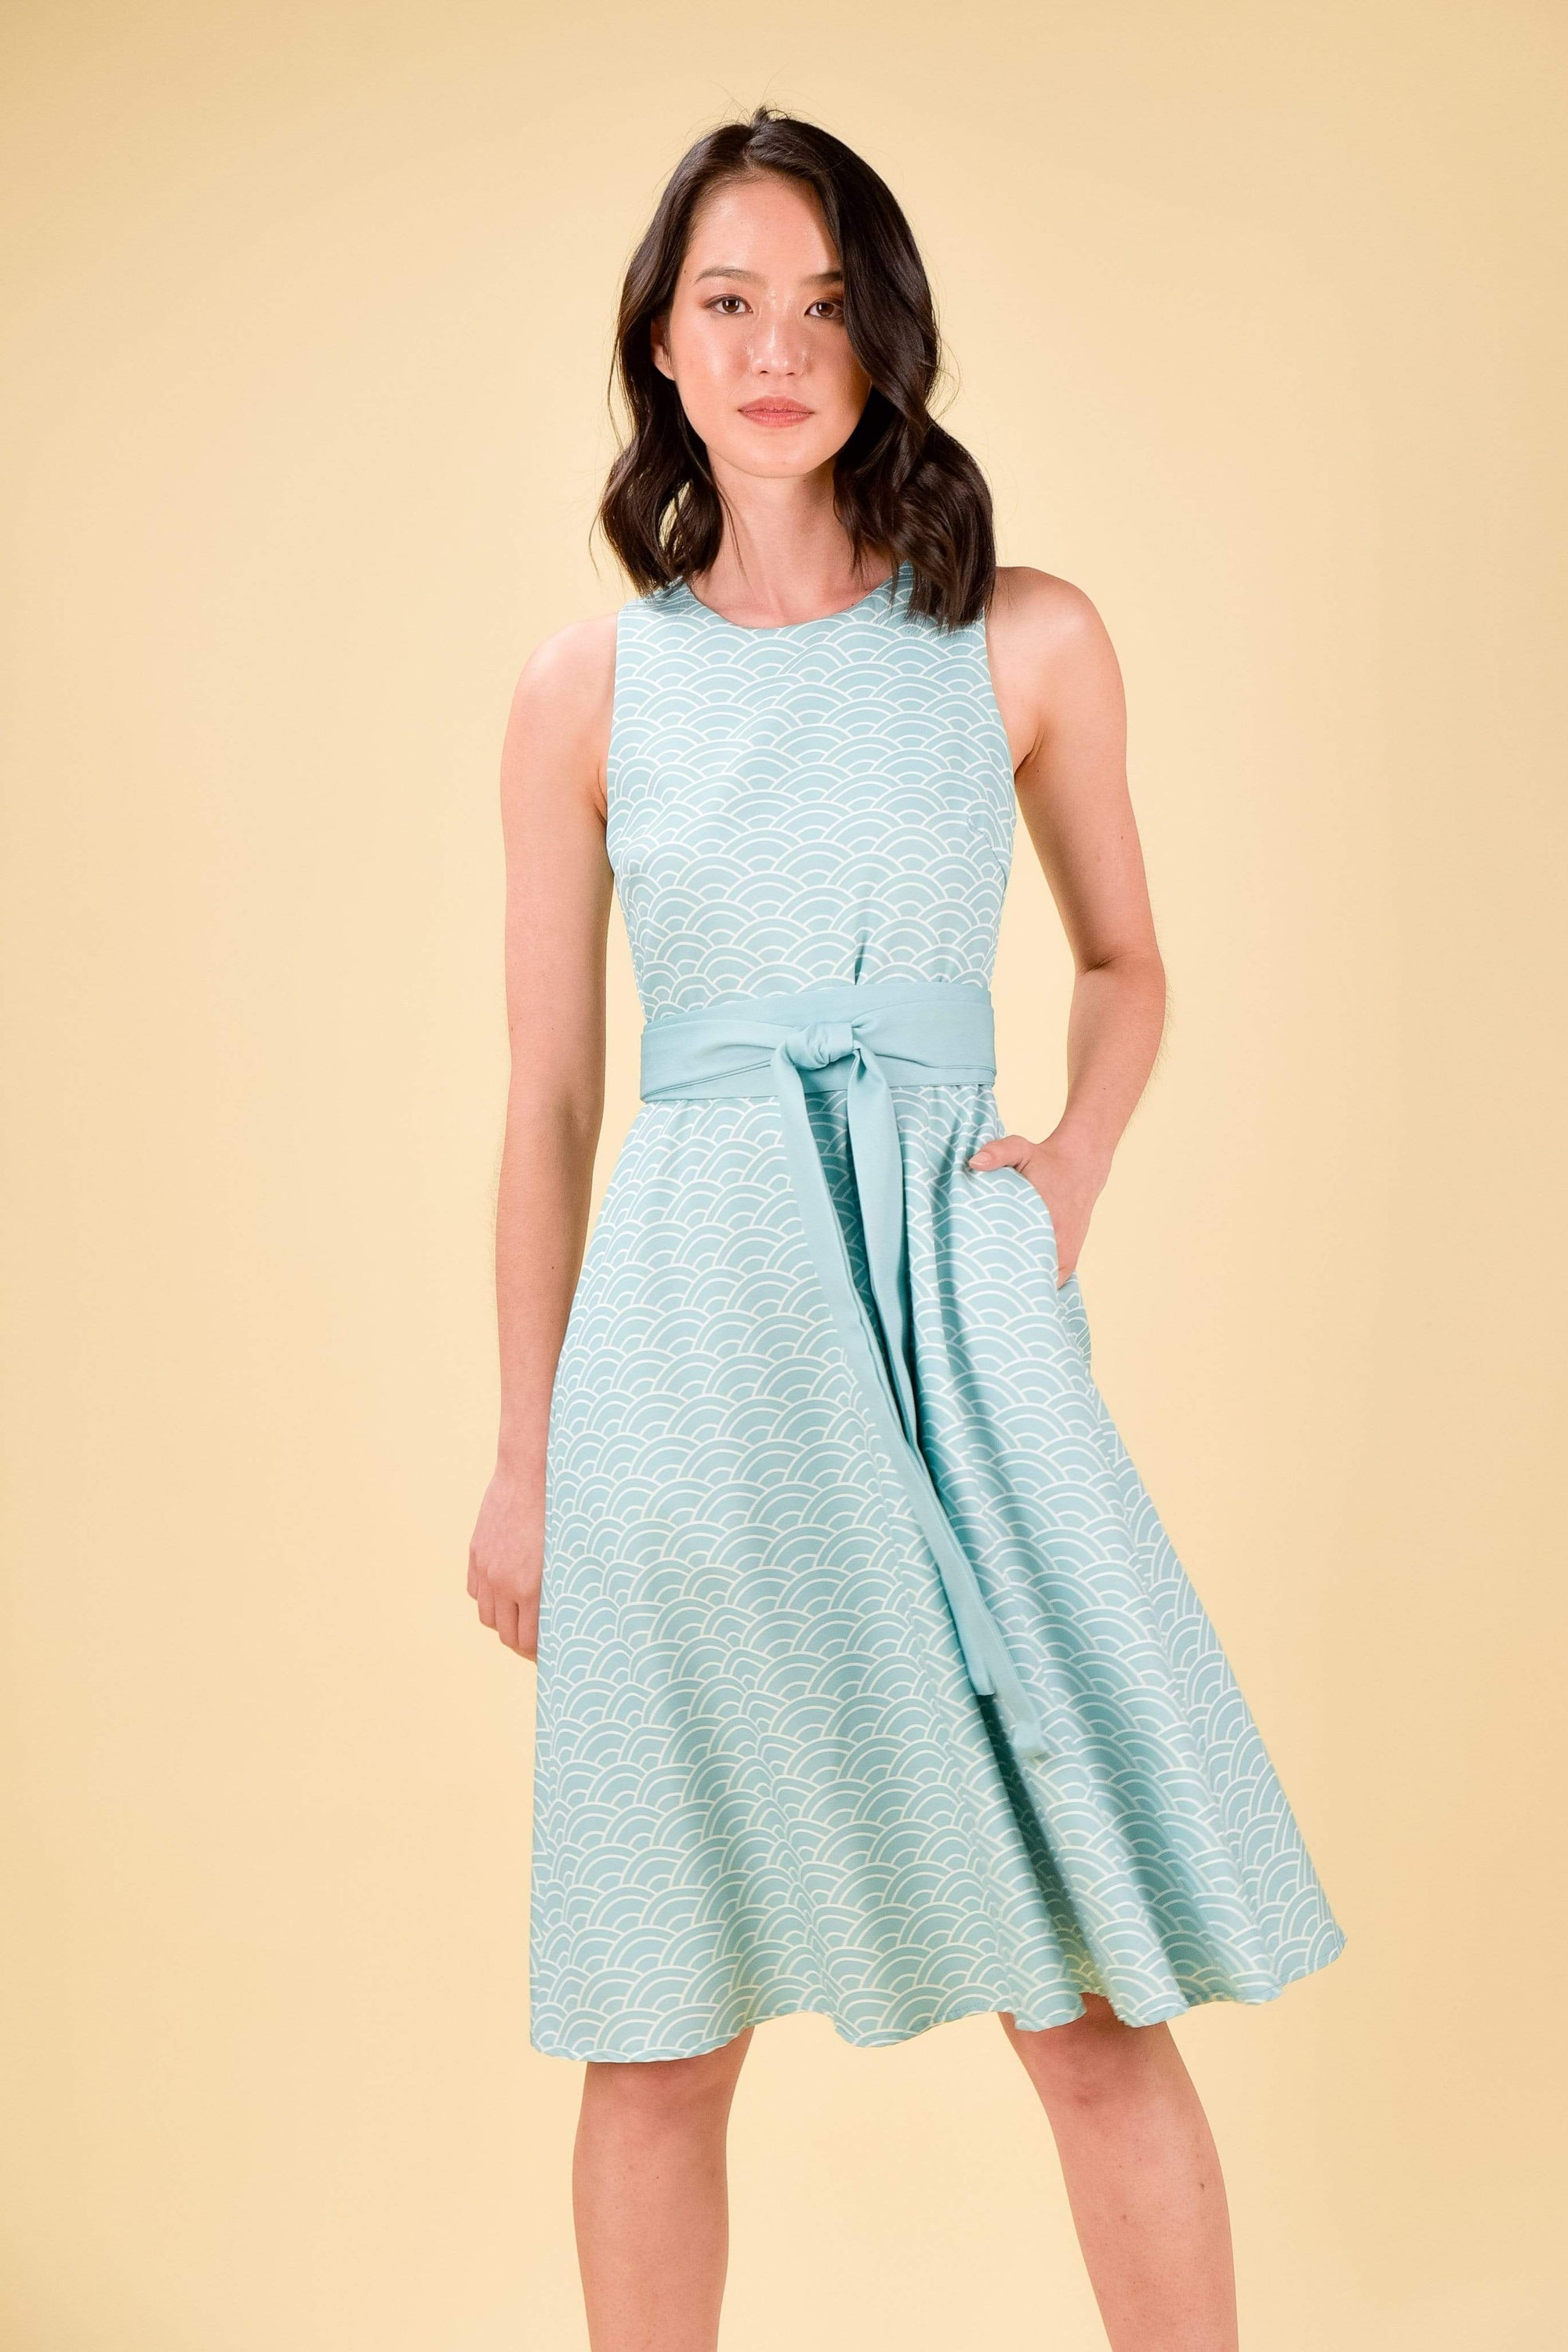 AWE Dresses AOI FIT-AND-FLARE DRESS IN SEAFOAM